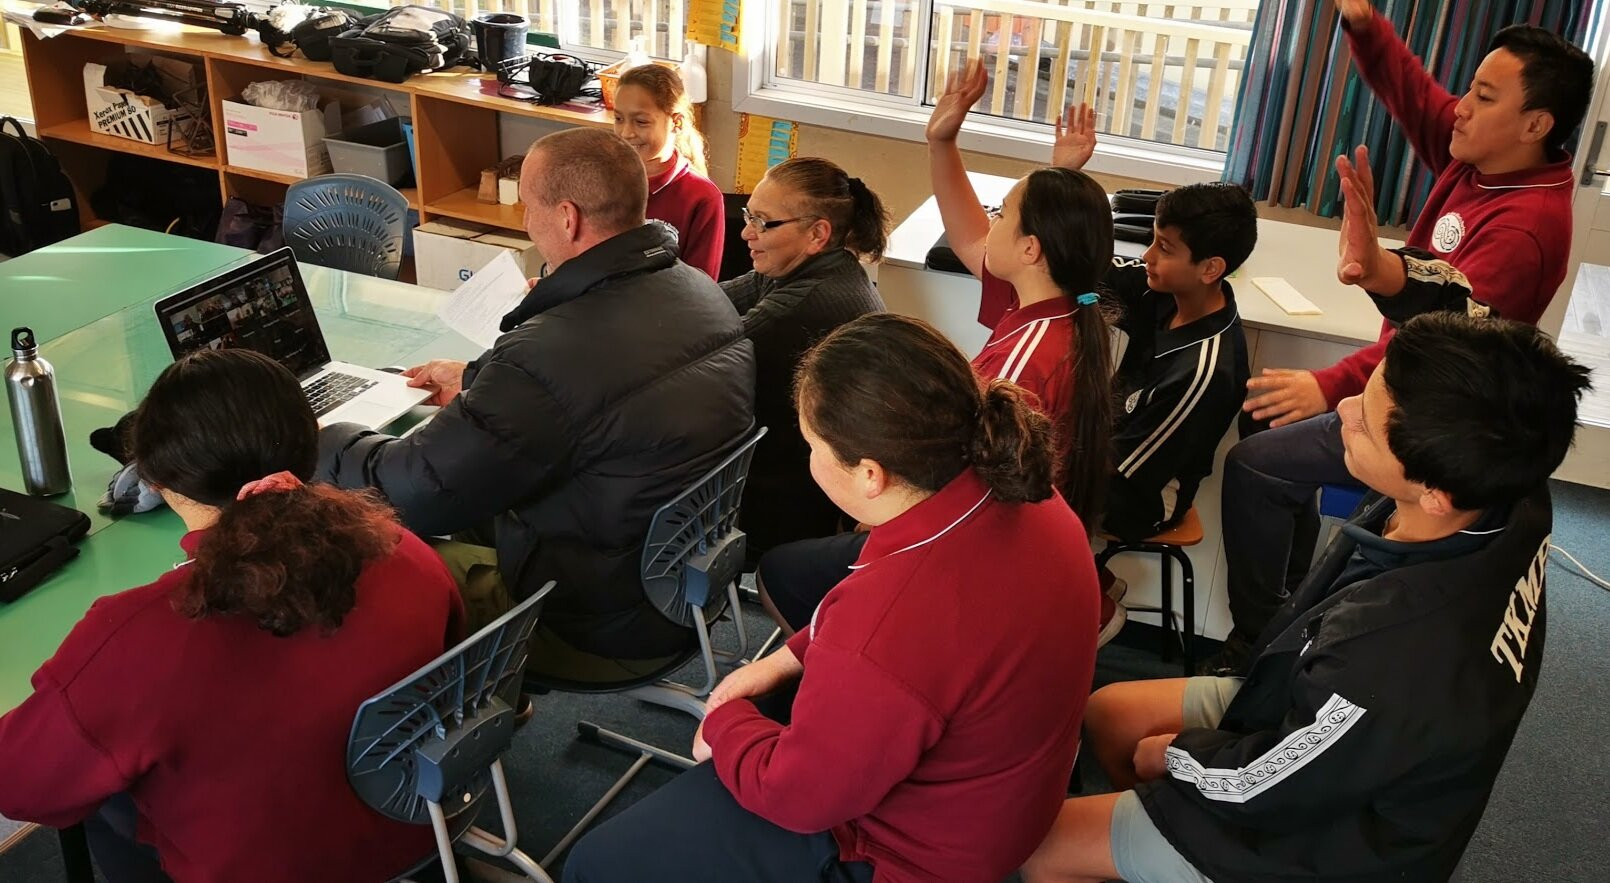 Map My Waahi:  Students at Te Kura Māori o Porirua talking about the value and meaning of pepeha as part of the Map My Waahi virtual field trip (June 2019).